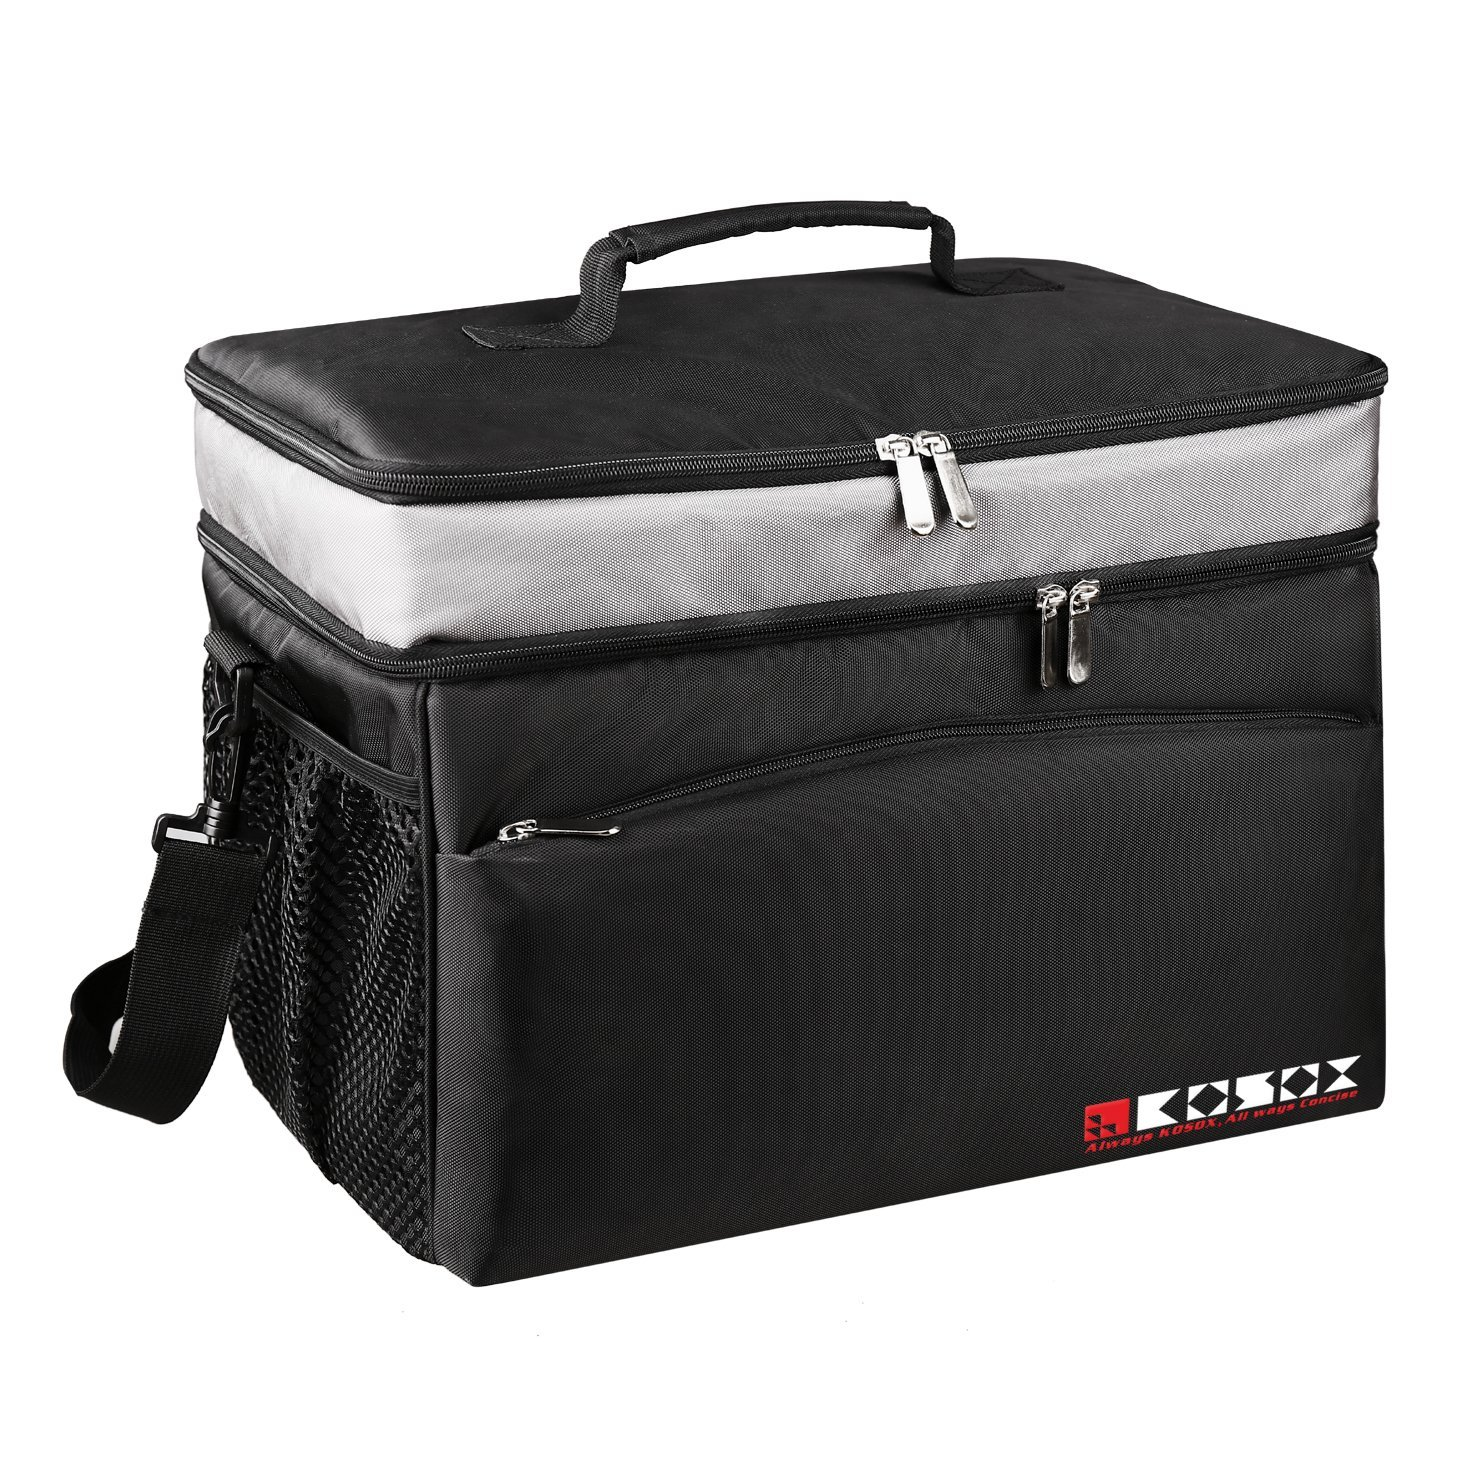 KOSOX 30-Can Collapsible Cooler Bag